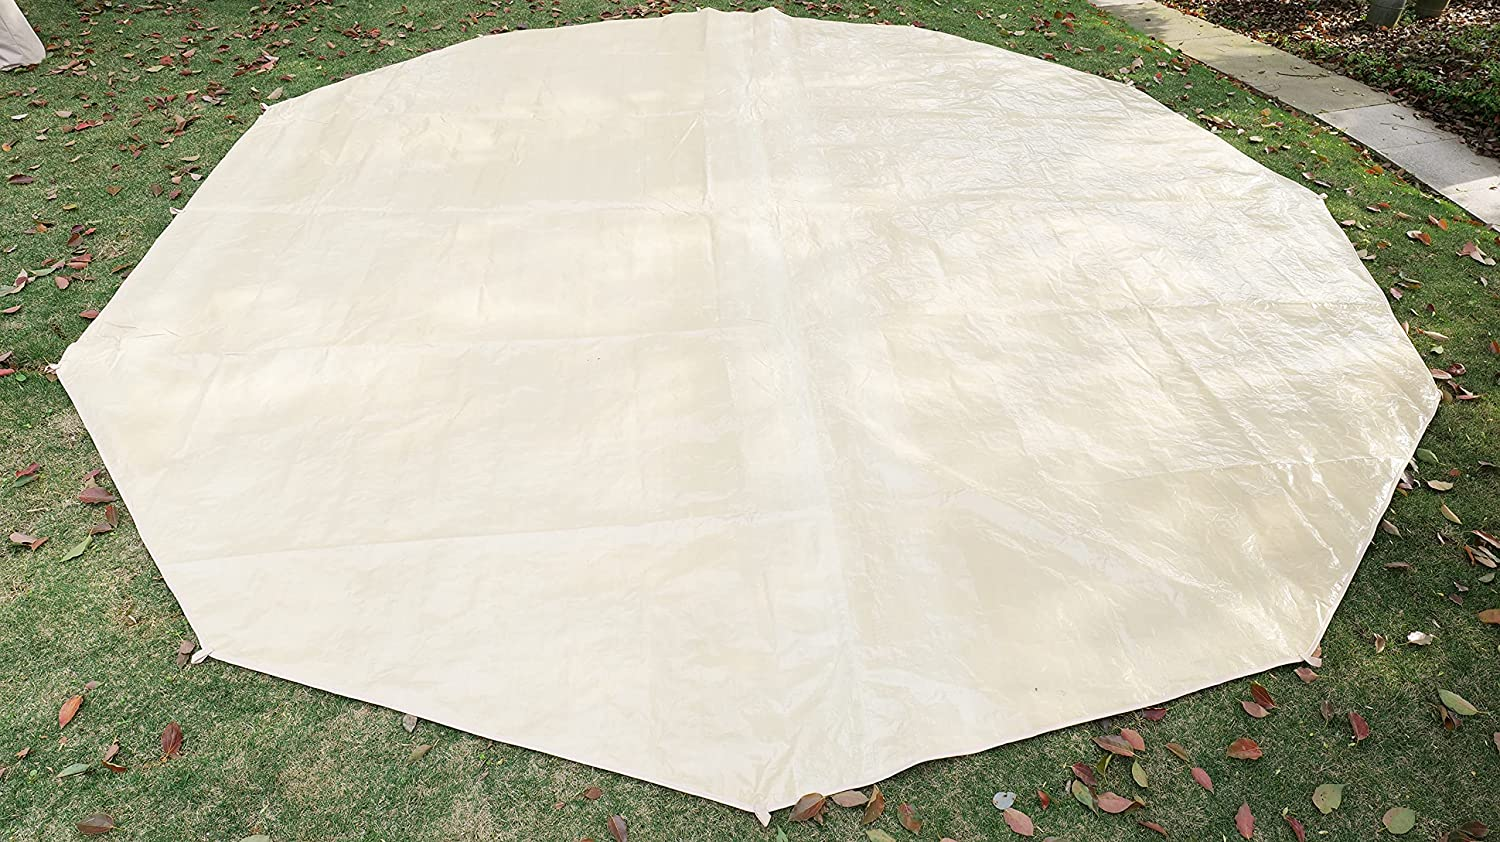 glamcamp Tent Footprint Ground Cloth Mat Super-cheap Round Picnic Waterproof Daily bargain sale